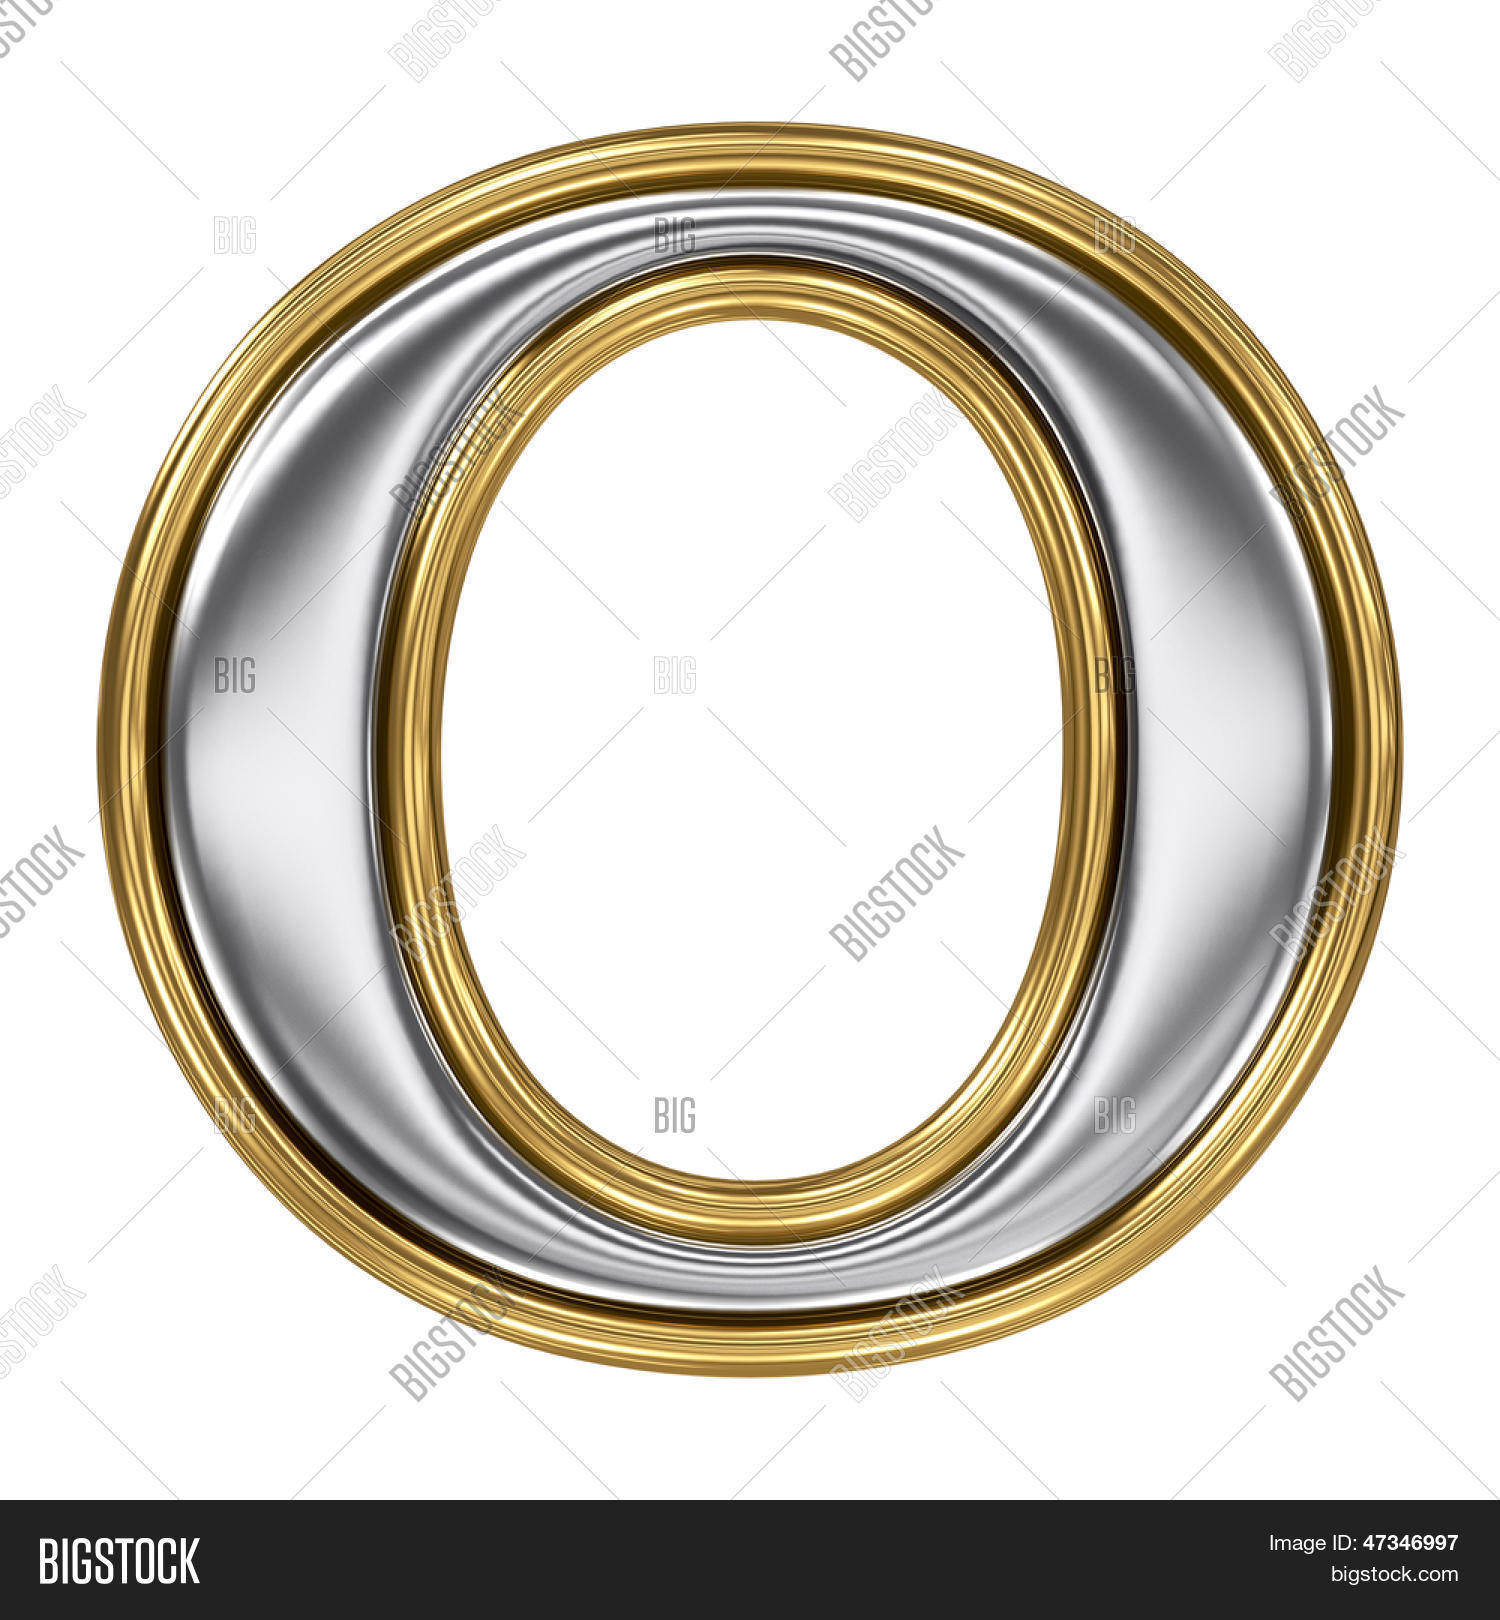 Silver And Gold Leters: Metal Silver Gold Alphabet Letter Image & Photo